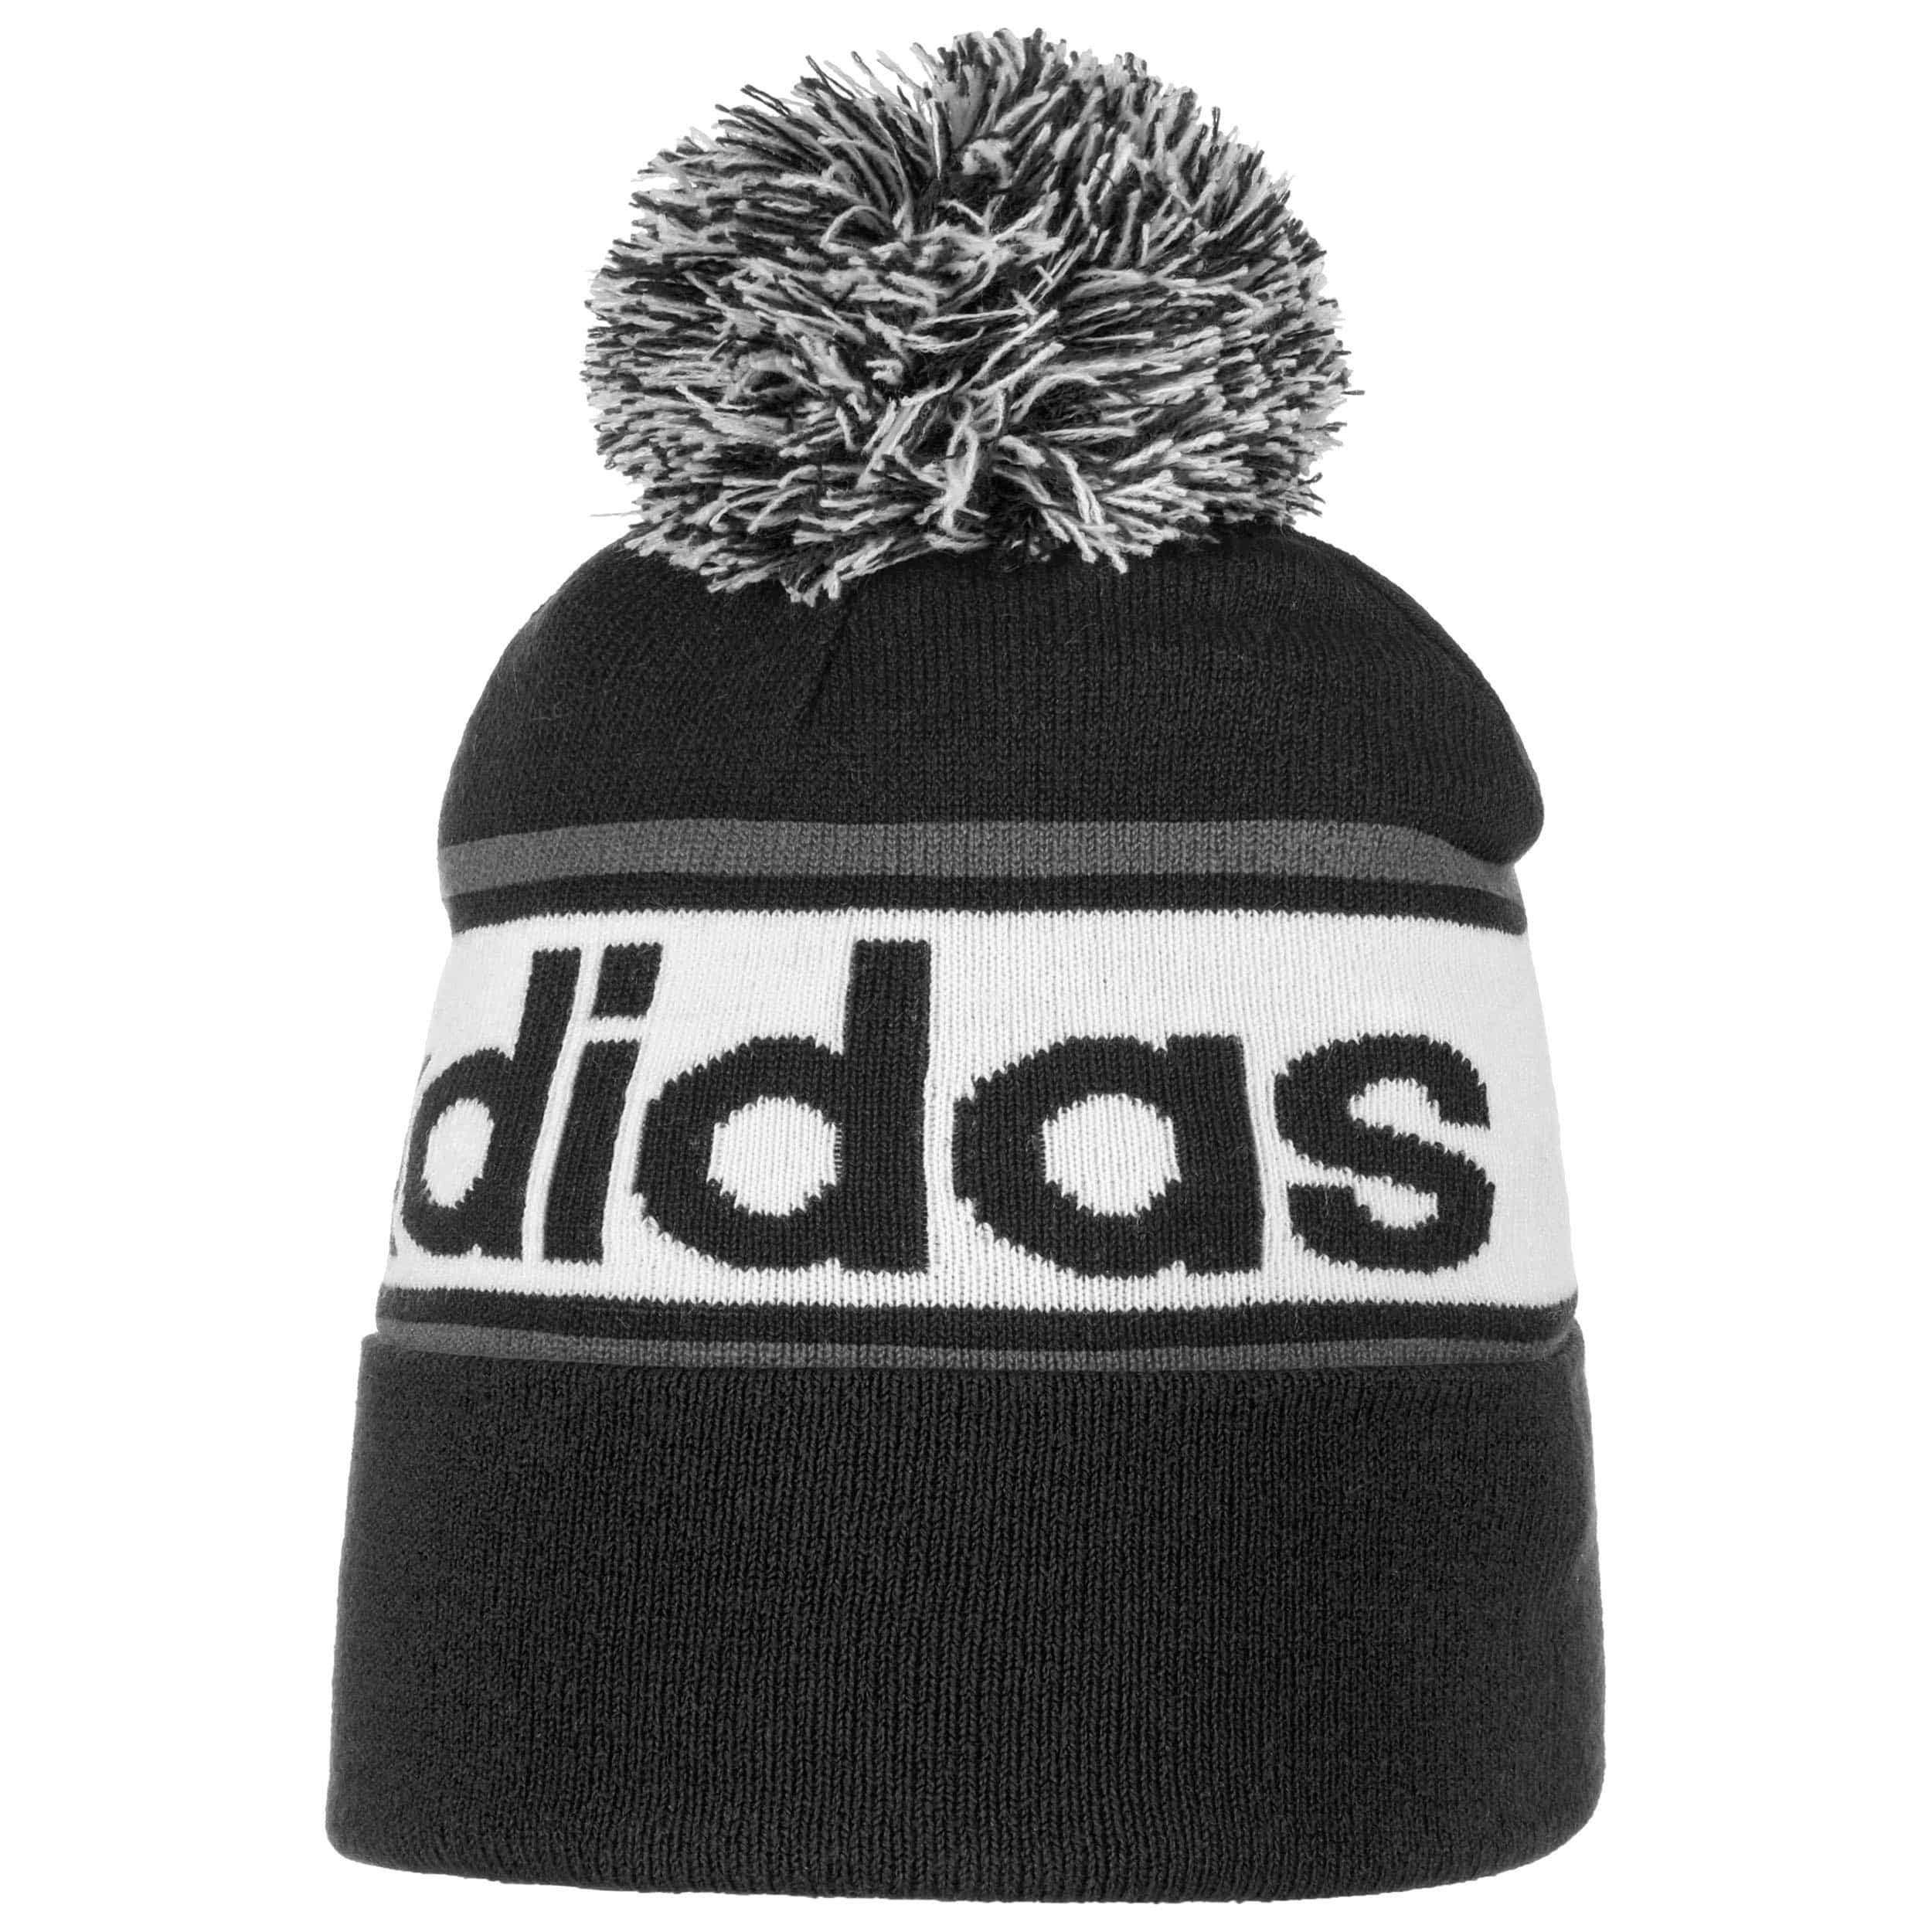 0dfb1c49f40 ... Linear Woolie Beanie Hat by adidas - black 5